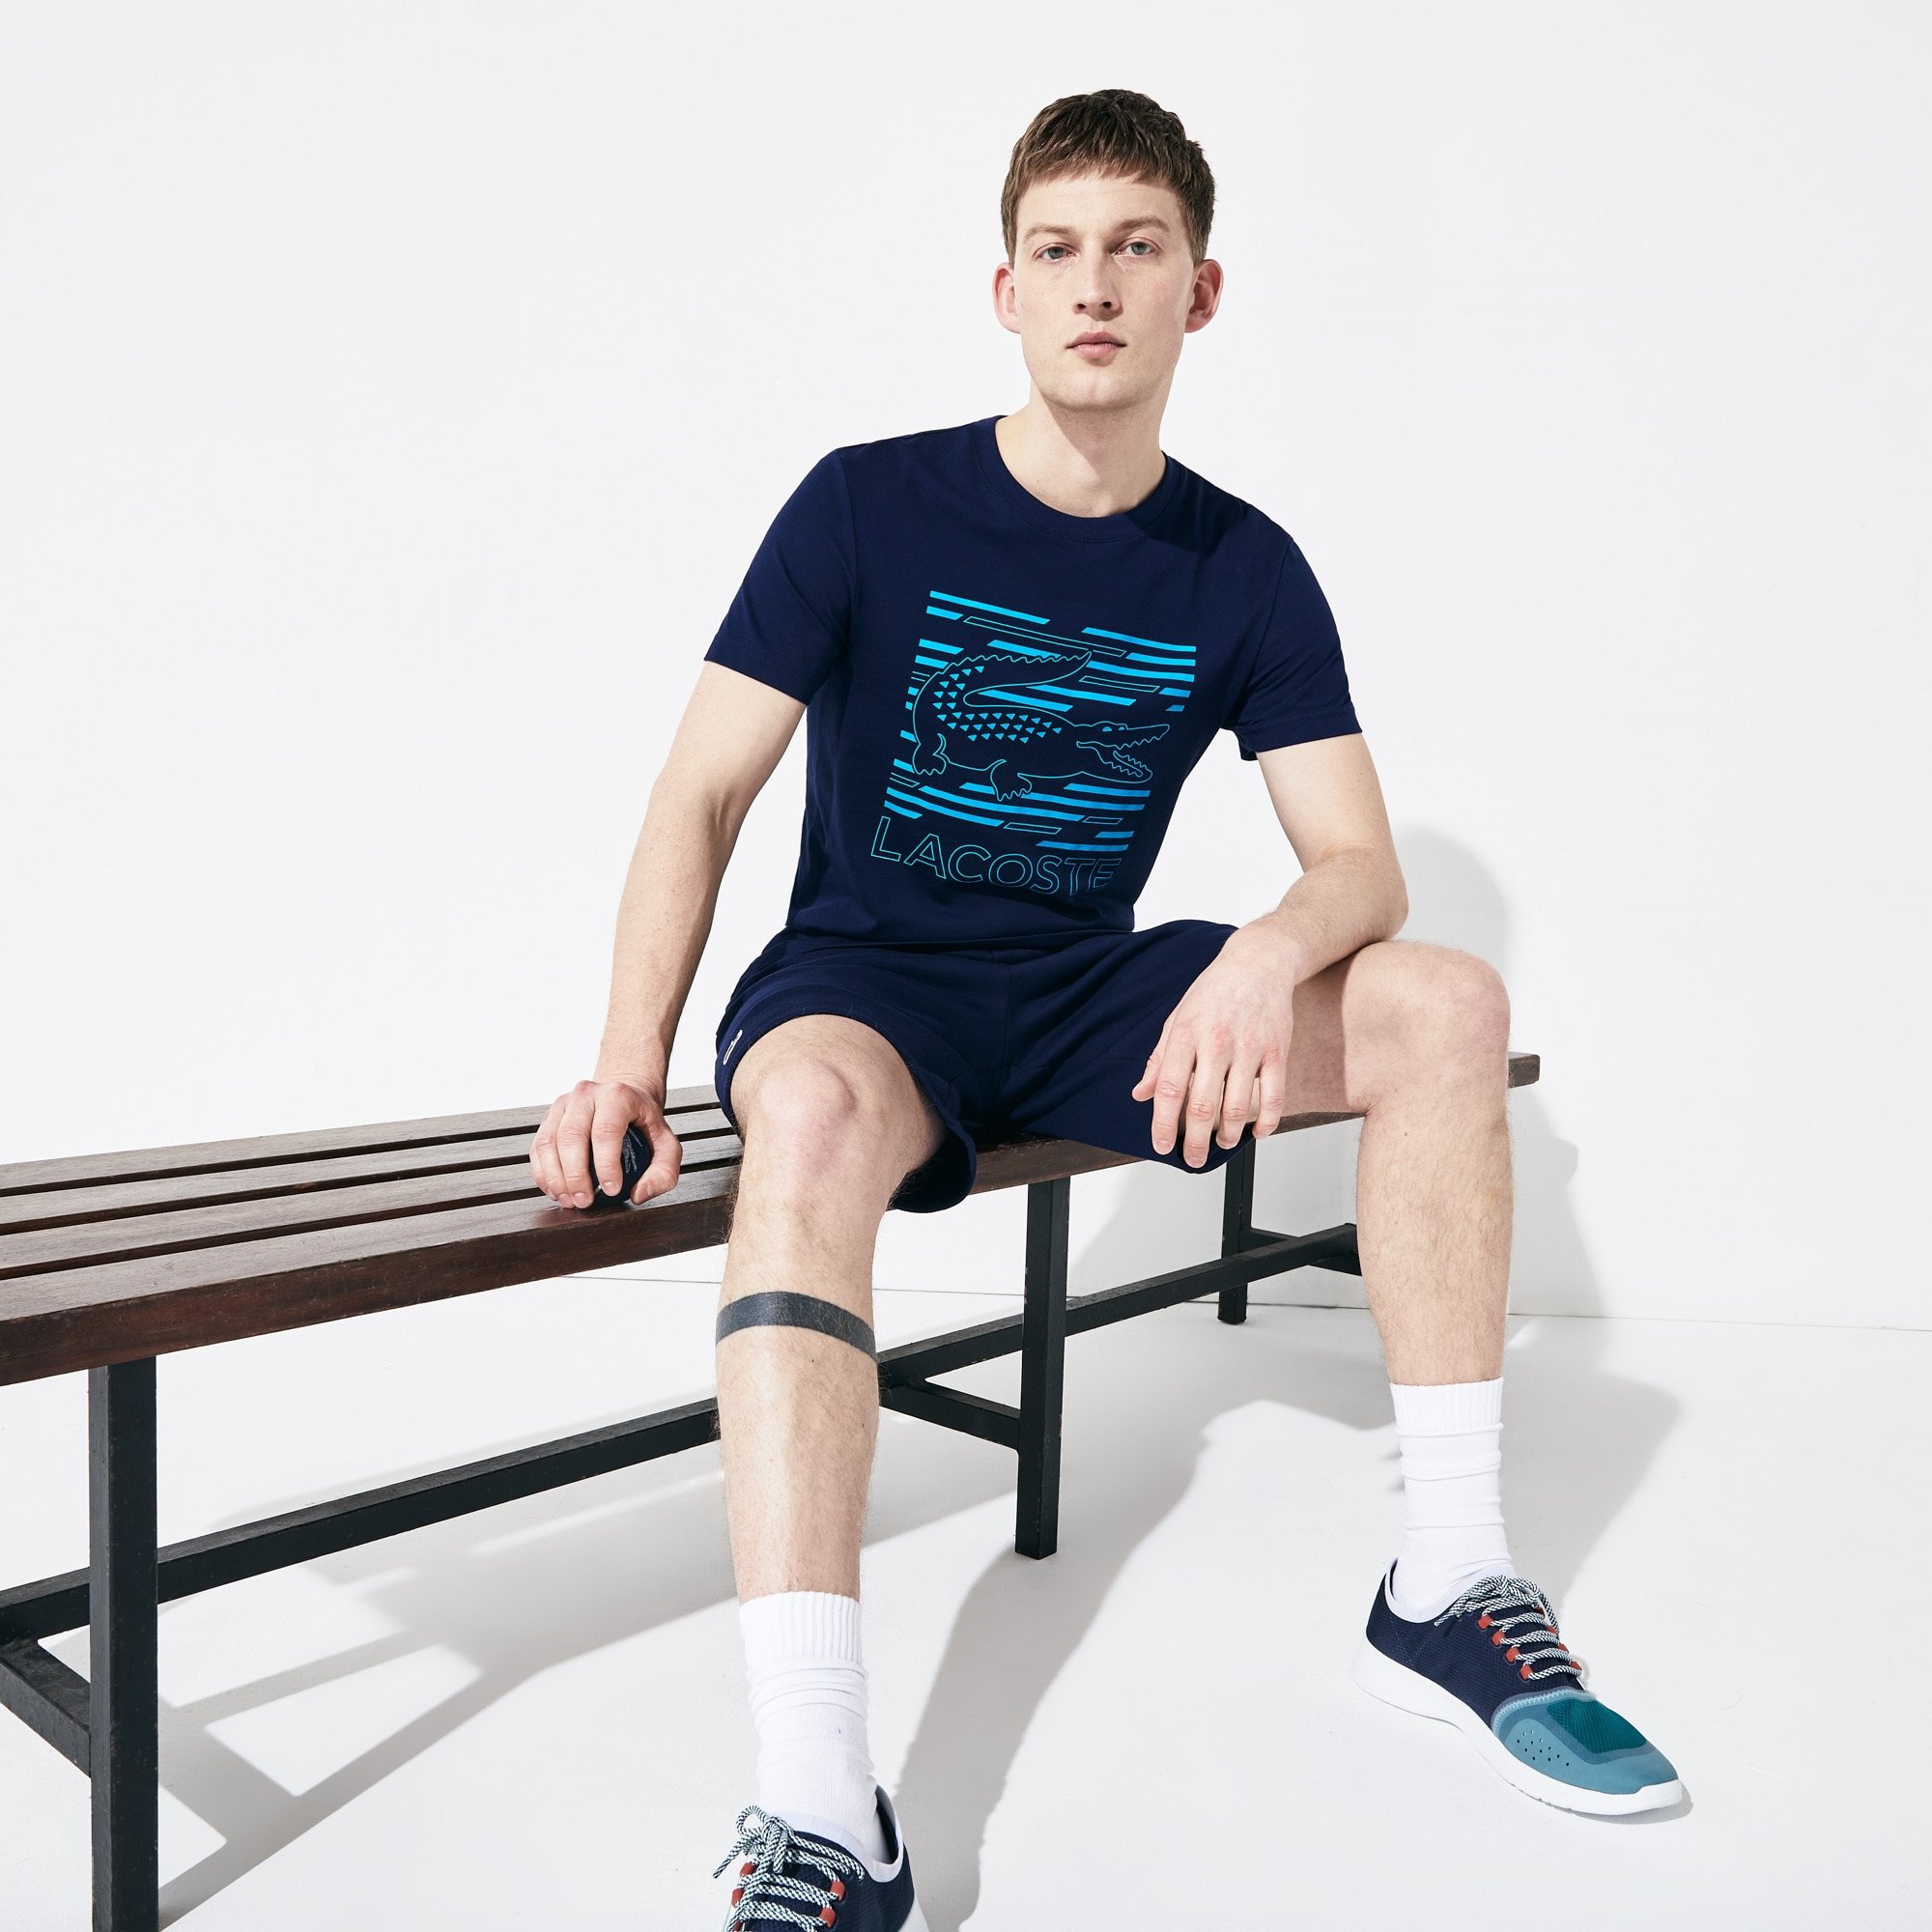 Men's Lacoste SPORT Crocodile Printed Breathable T-shirt